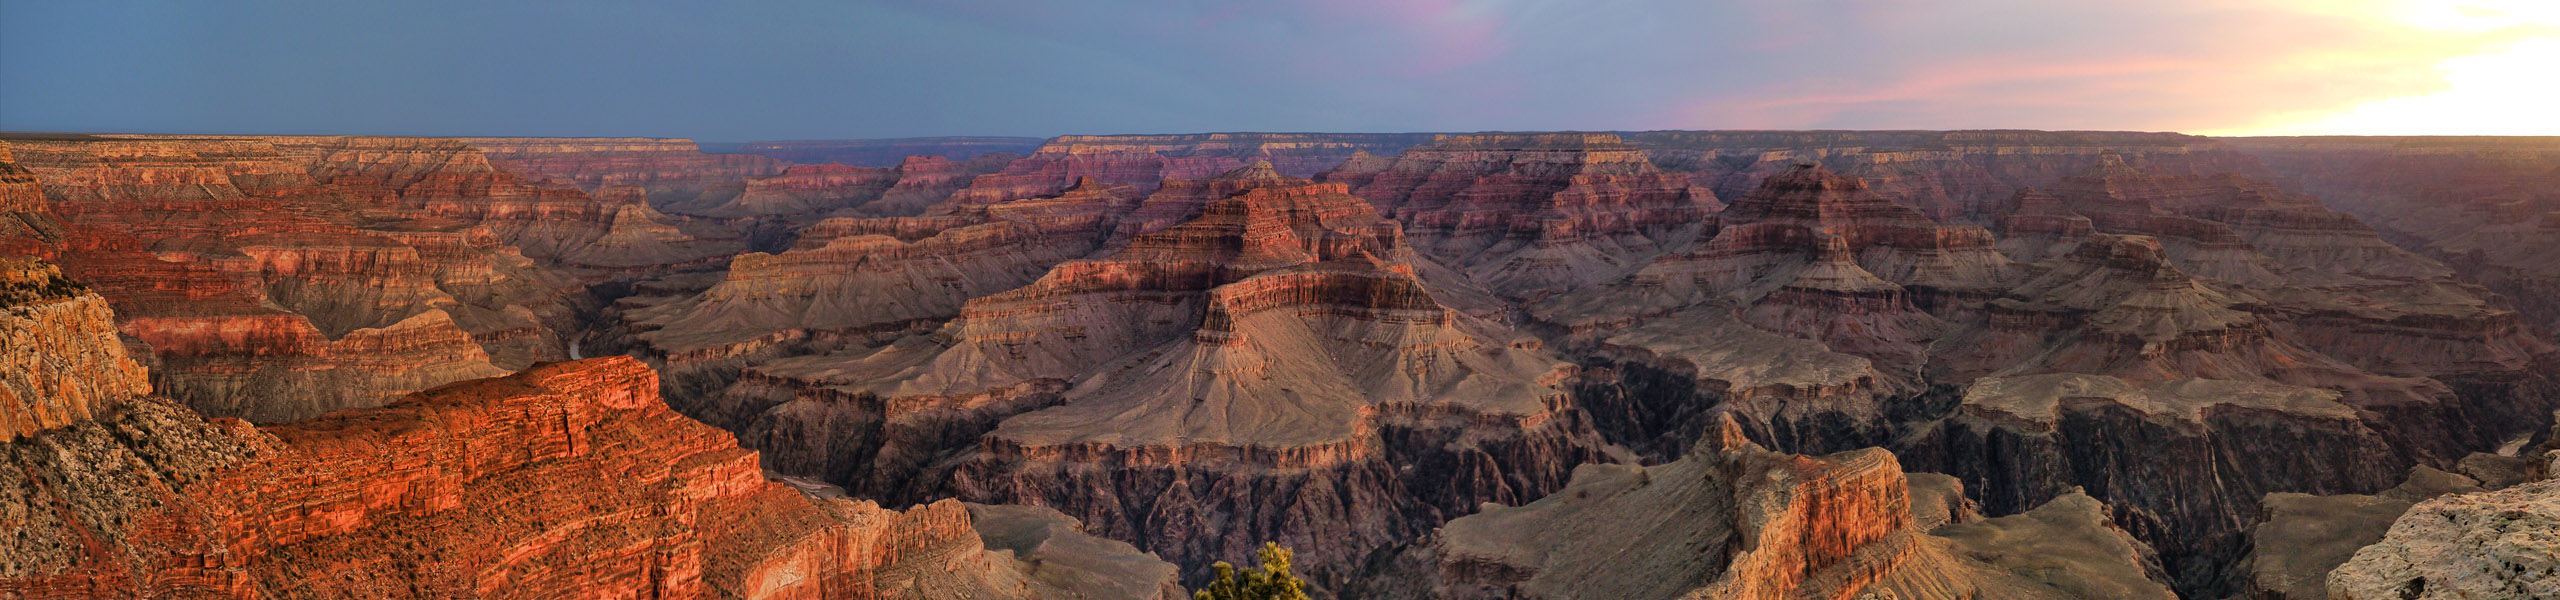 voyage sur-mesure au Grand Canyon – USA